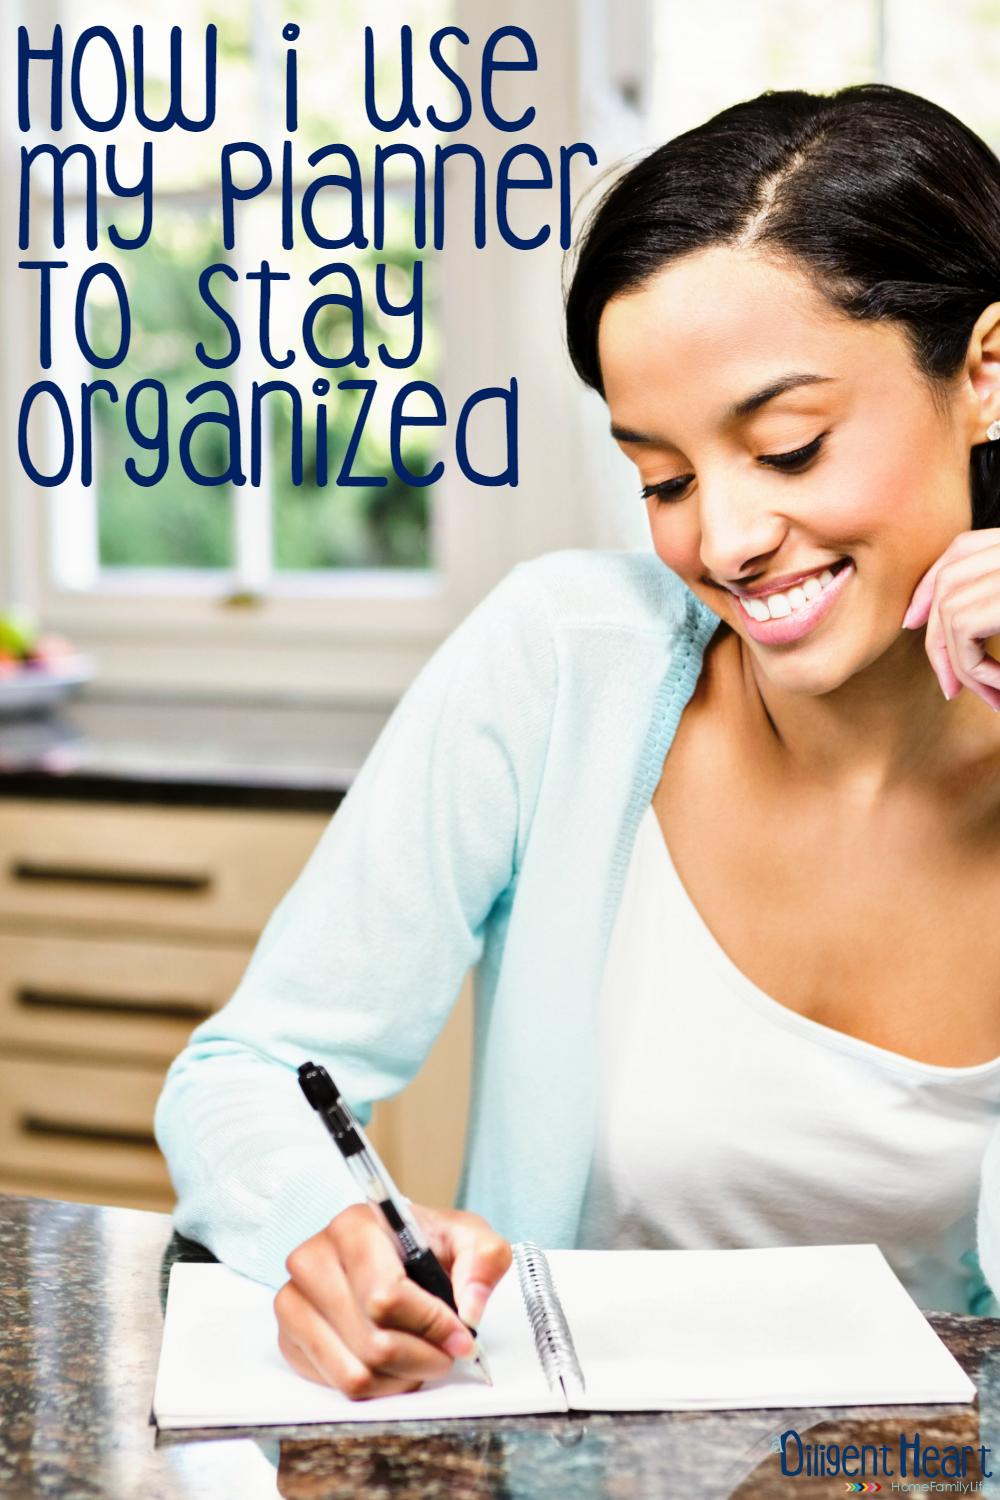 Looking for some inspiration on planners and keeping track of day-to-day life? I'm sharing how I stay organized and keep track of the day-to-day needs of my family and my life. I adiligentheart.com